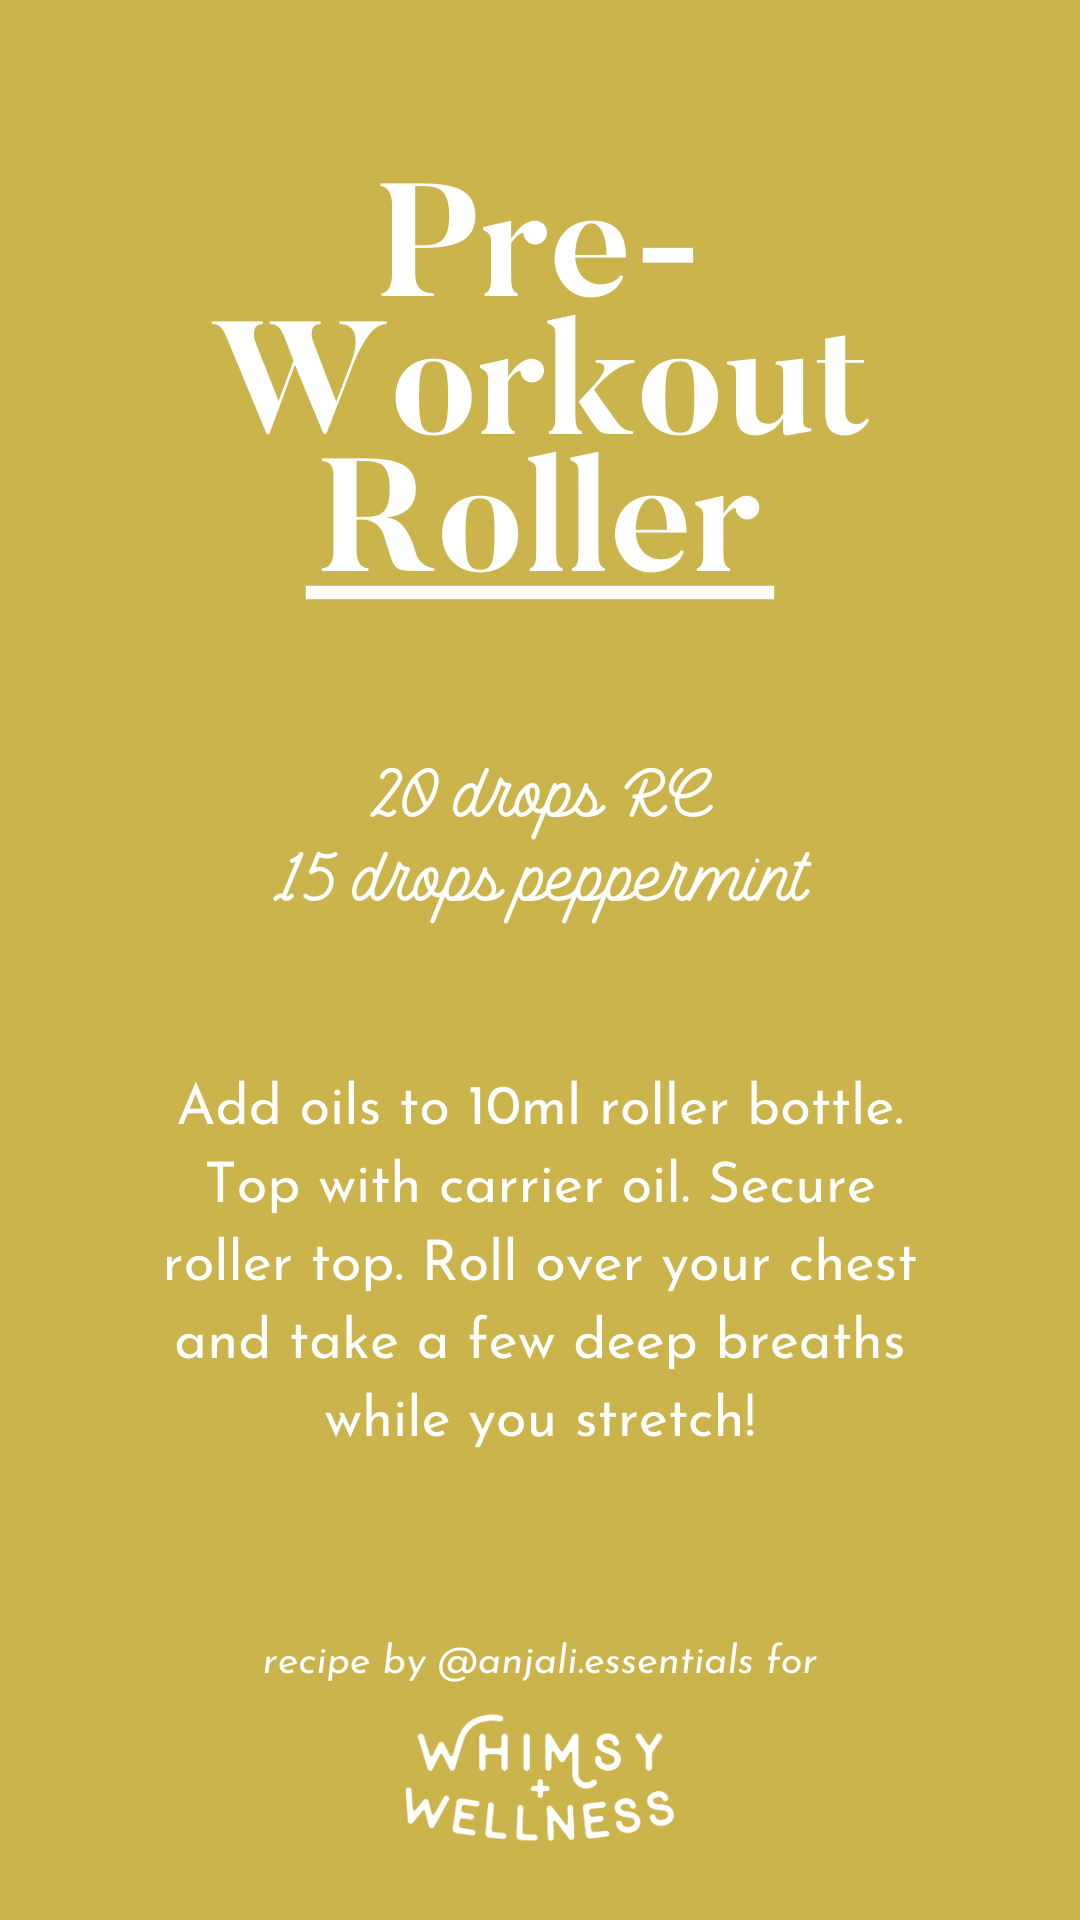 Anjali's Pre-Workout Roller recipe, made with Young Living Essential Oils